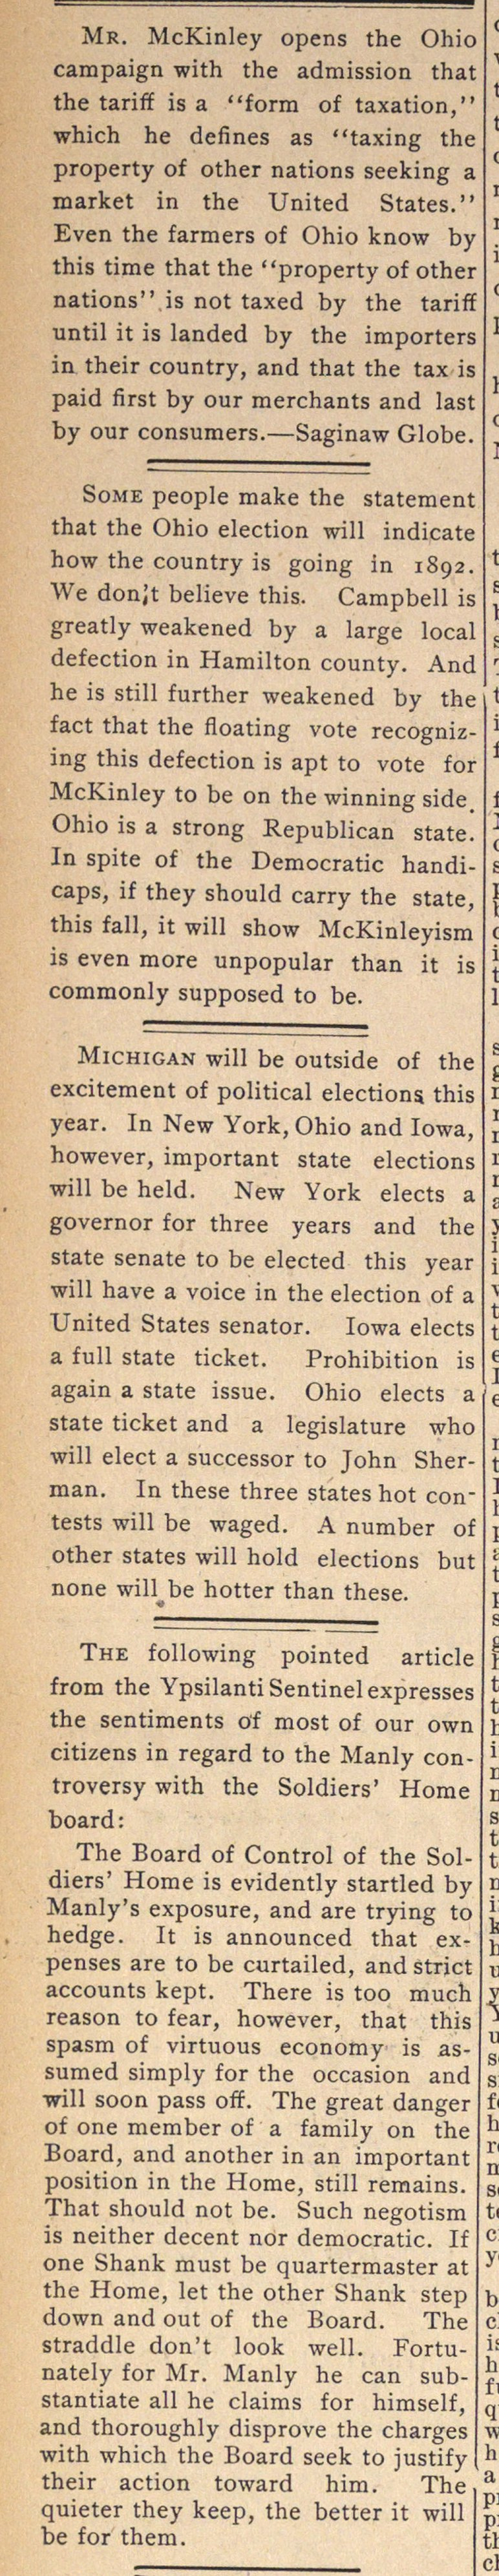 Mr. McKinley opens the Ohio campaign wit... image